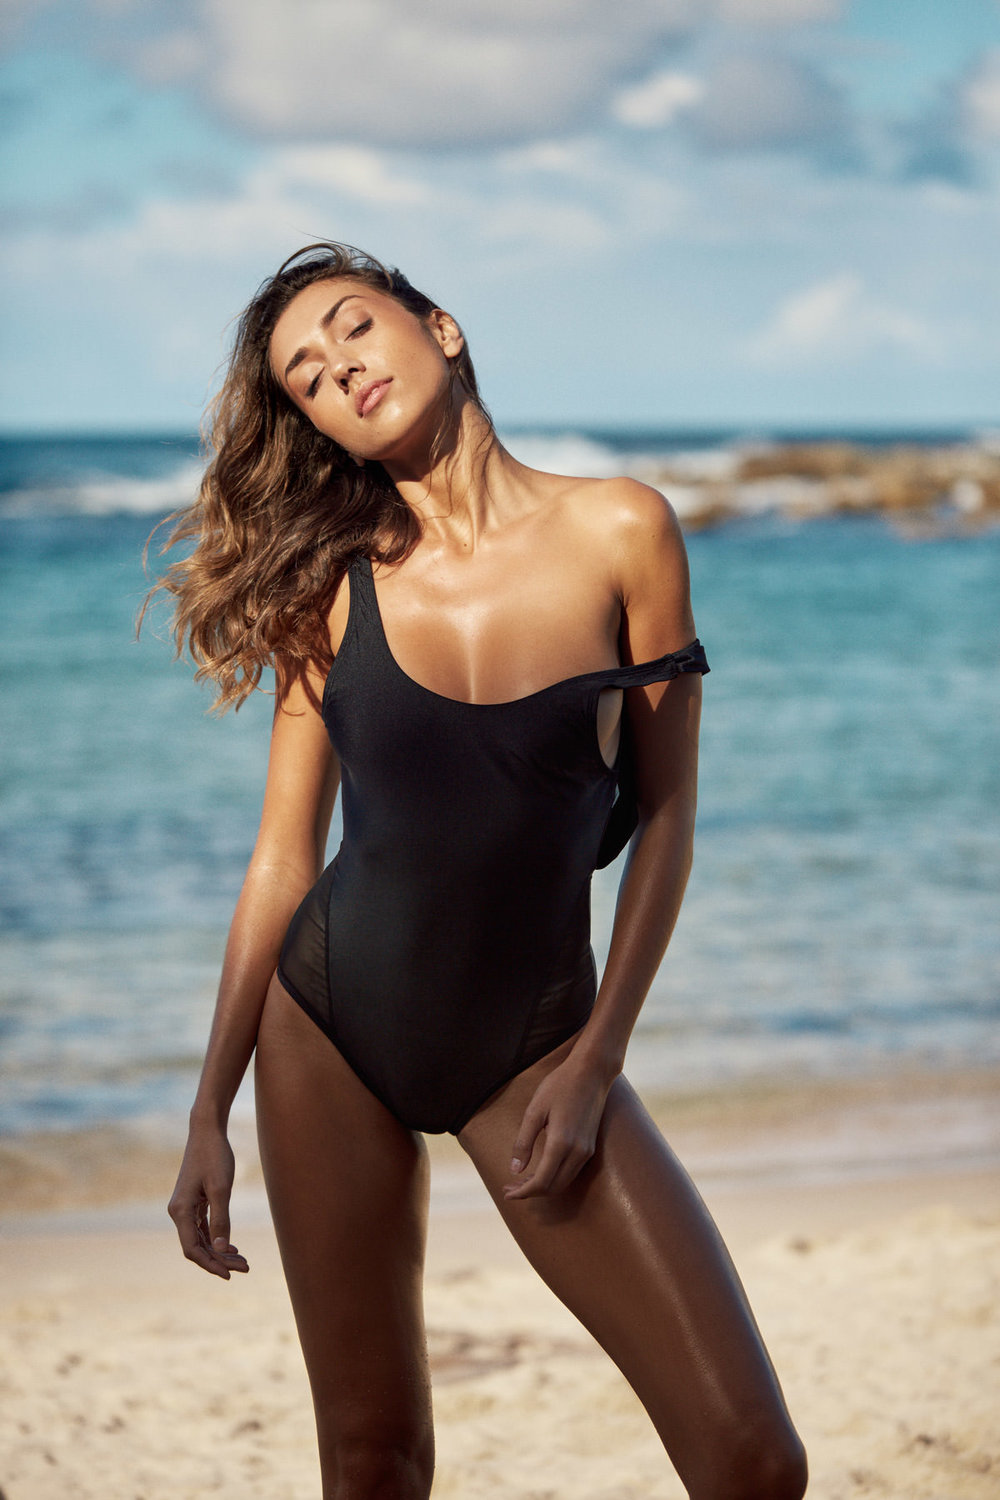 Shannon Lawson wears Myla Contour One Piece Swimsuit in Espresso - SHOP HERE →